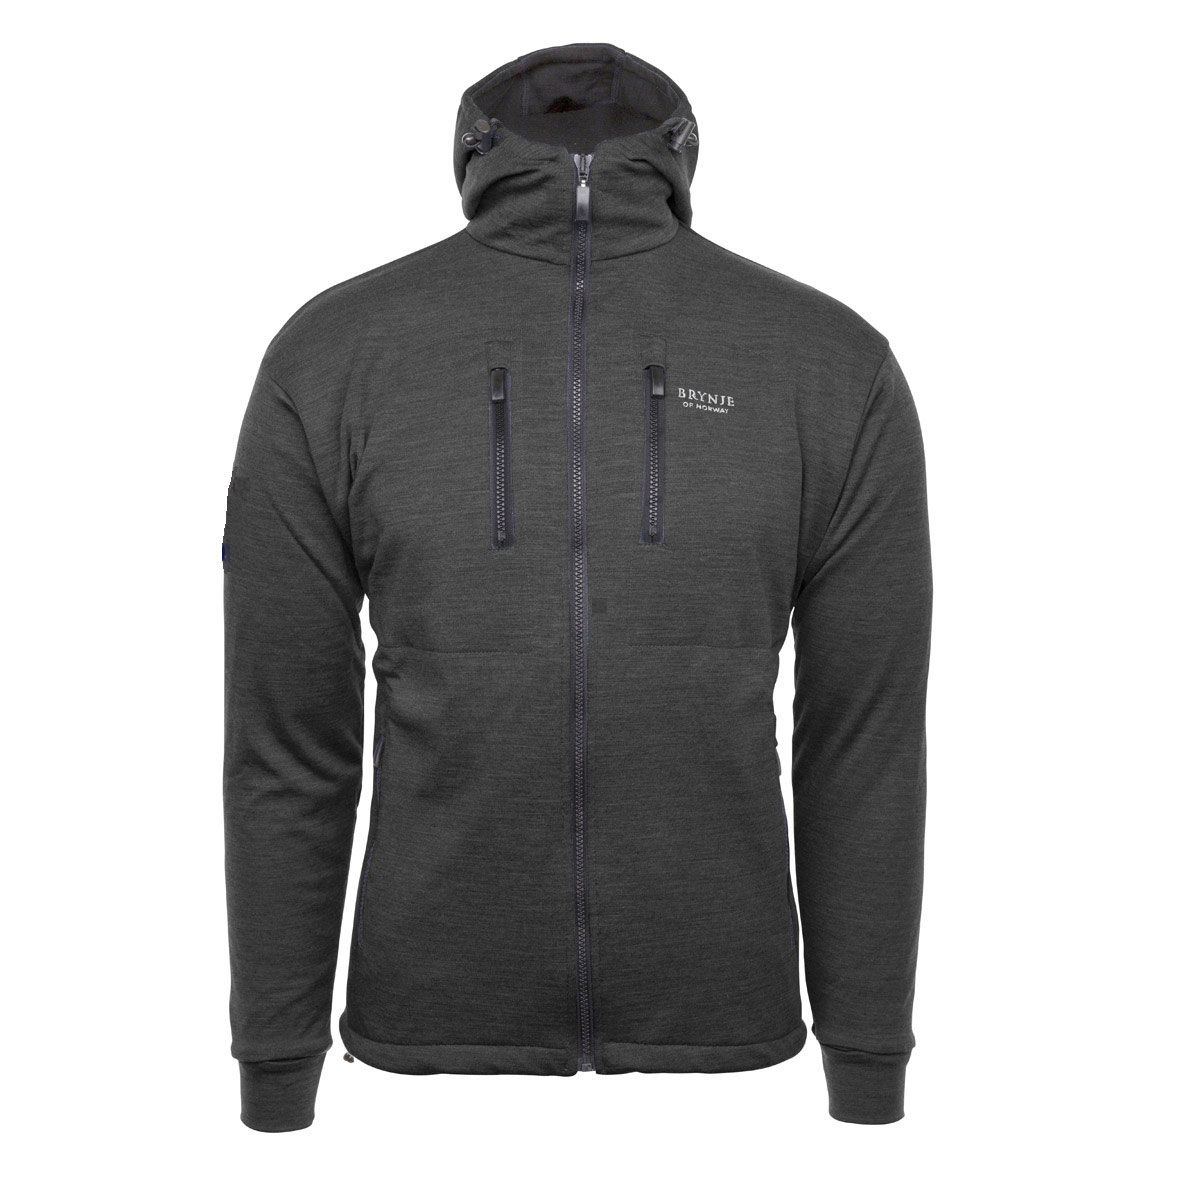 Brynje Antarctic Jacket with Hood - Charcoal